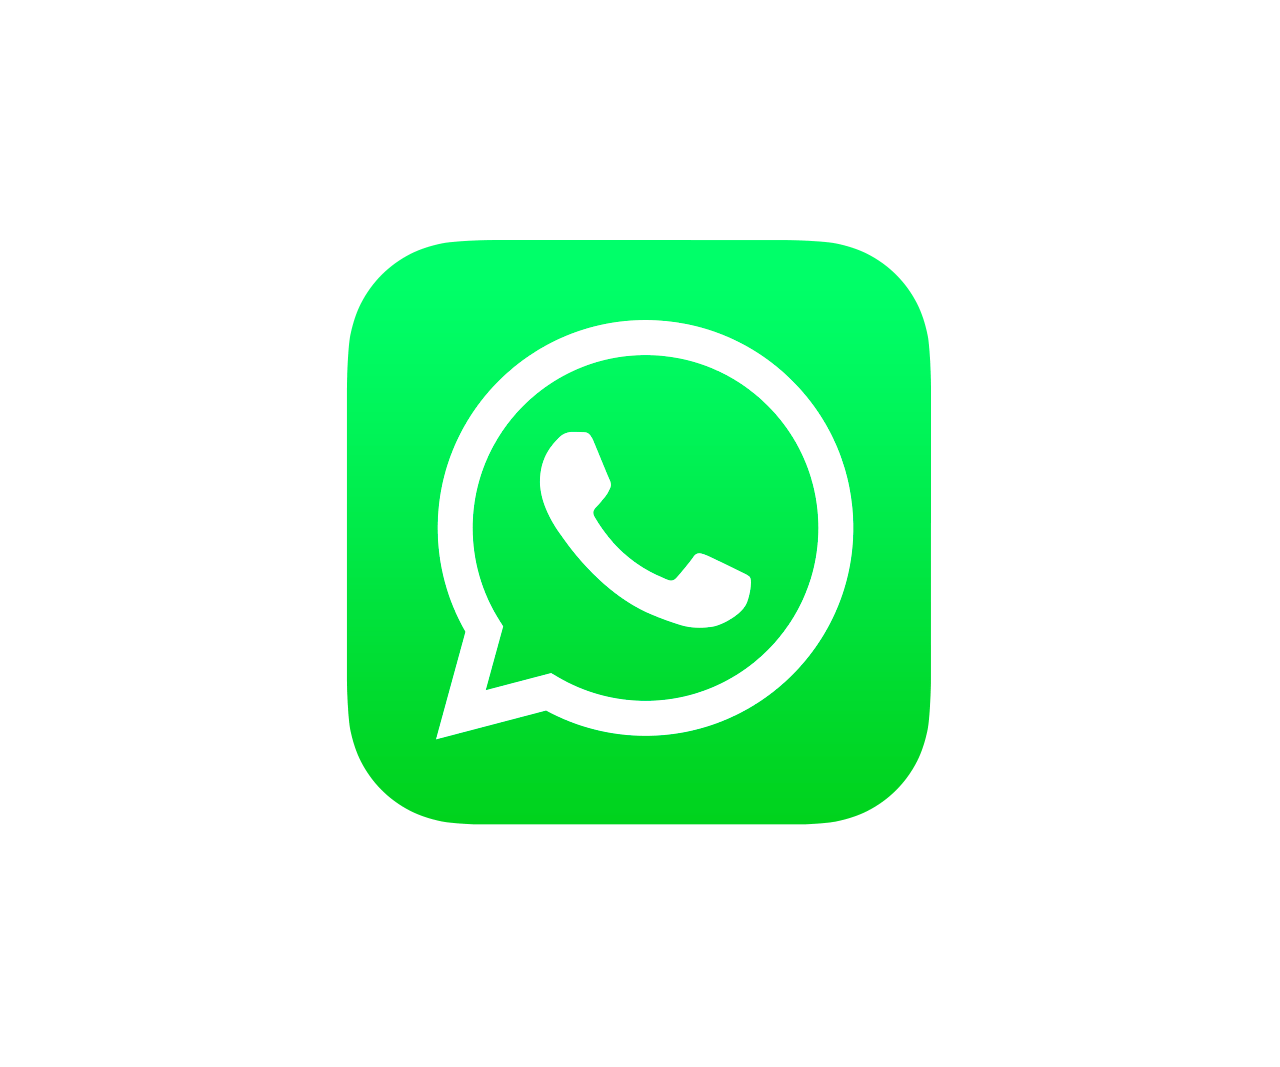 Whatsapp logo png transparent background. Ios icon stickpng download